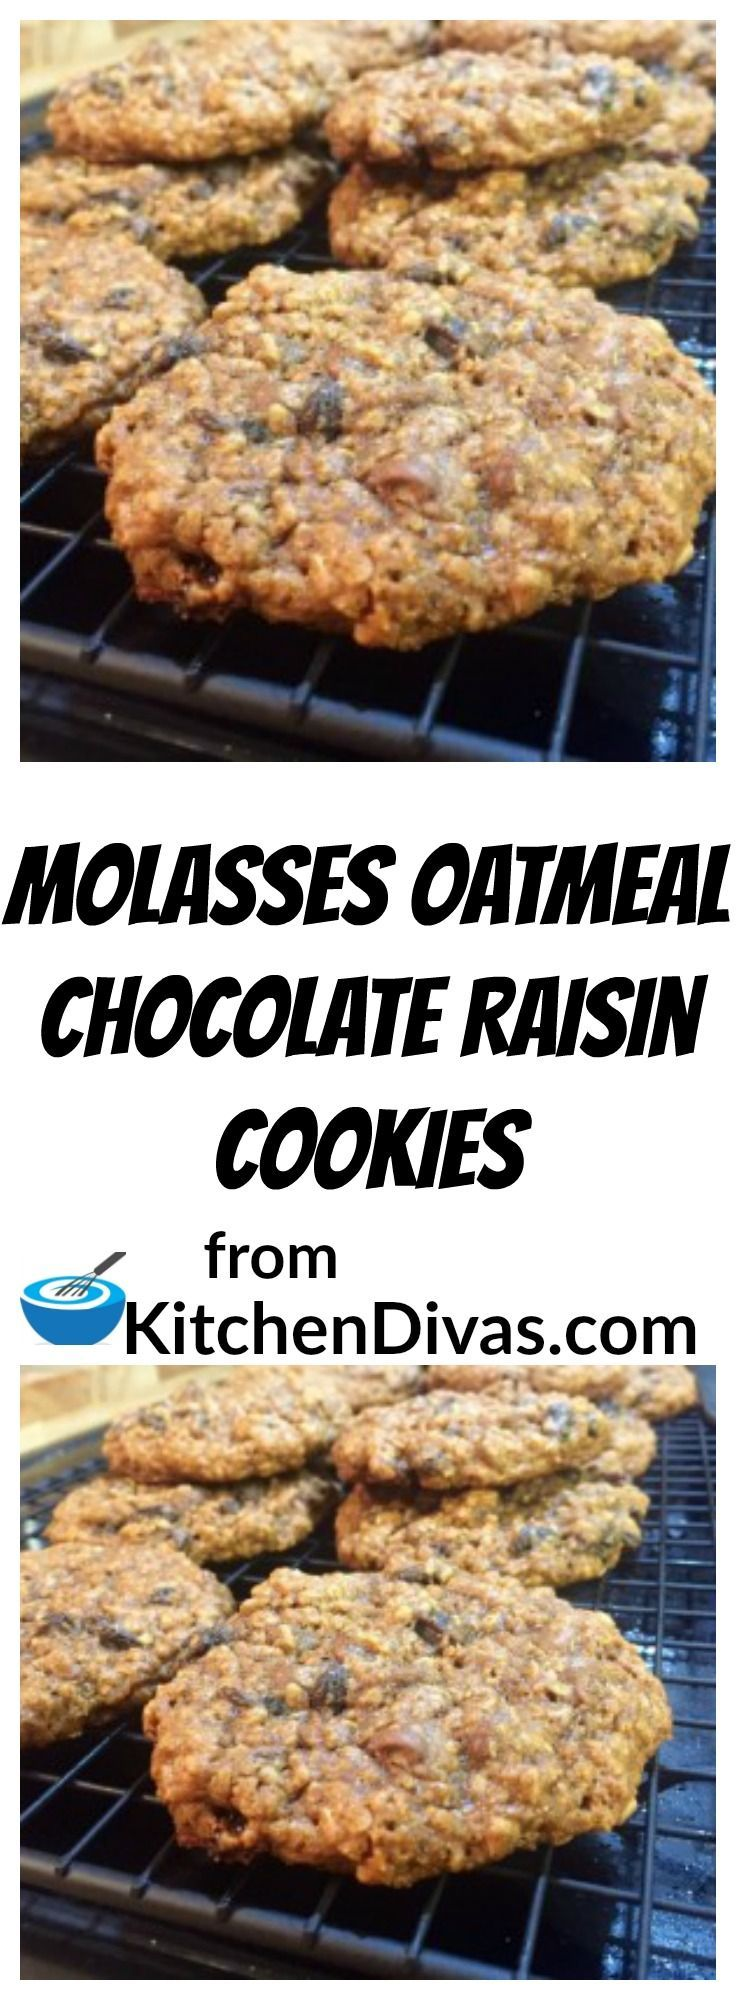 Molasses Oatmeal Chocolate Raisin Cookies remind me of my grandmother, every time I eat one. She was amazing. These cookies are so soft, and so chewy. I just can't get enough of them. They are easy to make and the chocolate always made them taste even better. I always remember the smell in the house when she would make them. You knew what was in the oven as soon as you encountered that smell. Around here everyone feels the same way about these cookies, they don't last long at all.